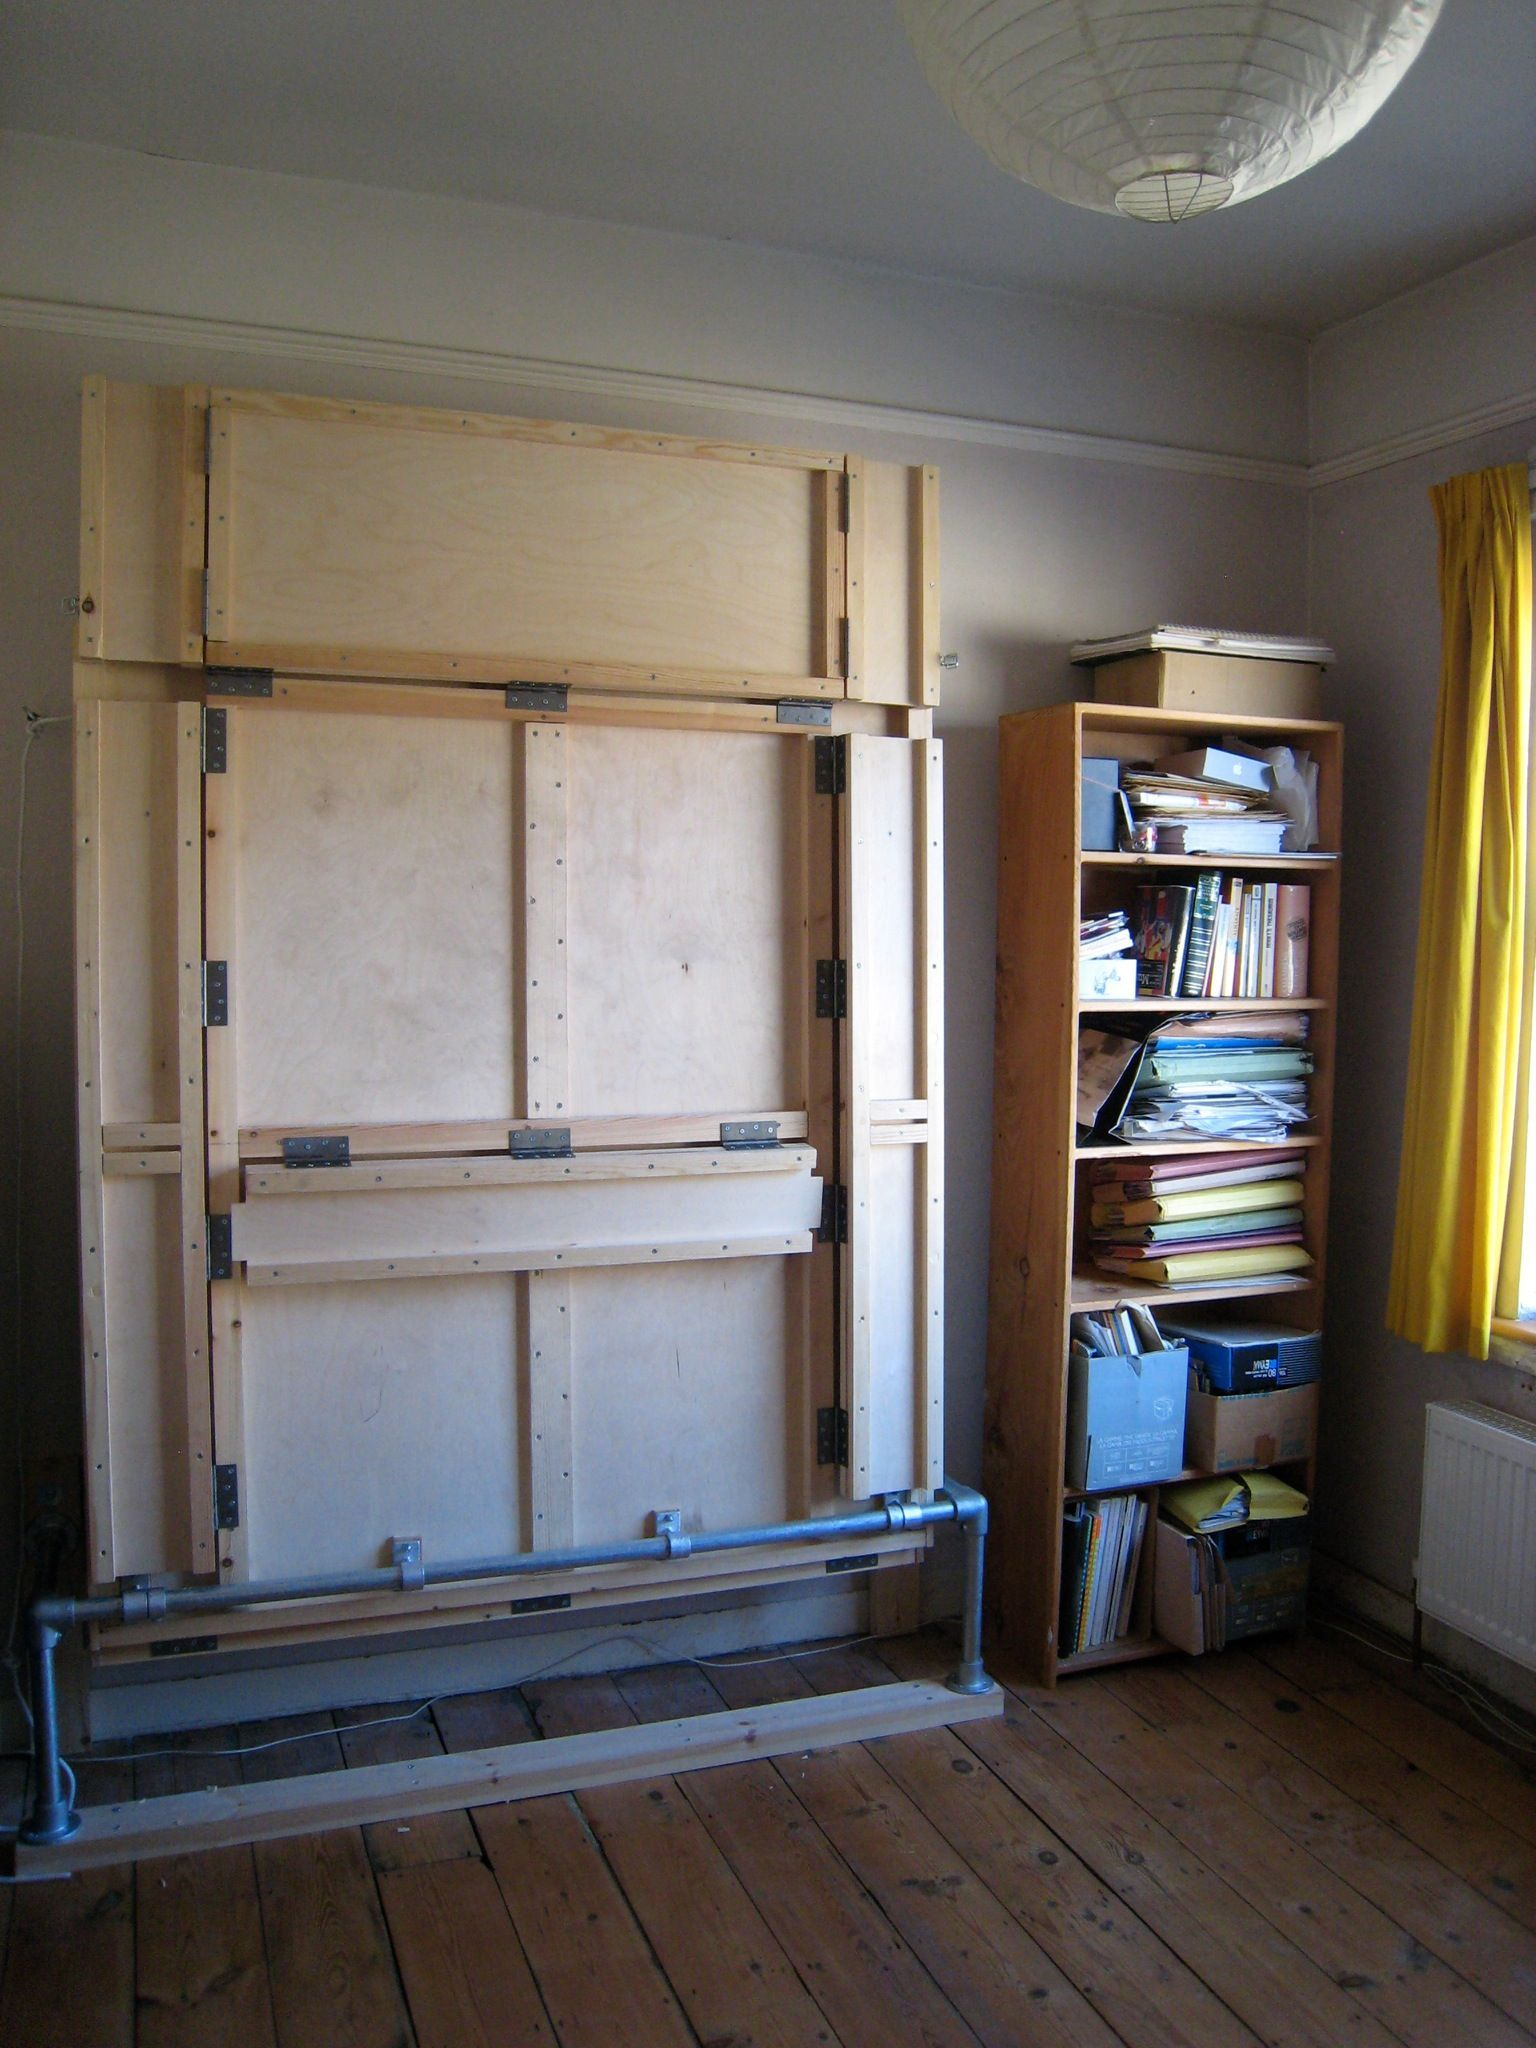 The wallbed in its folded up positionfolded position